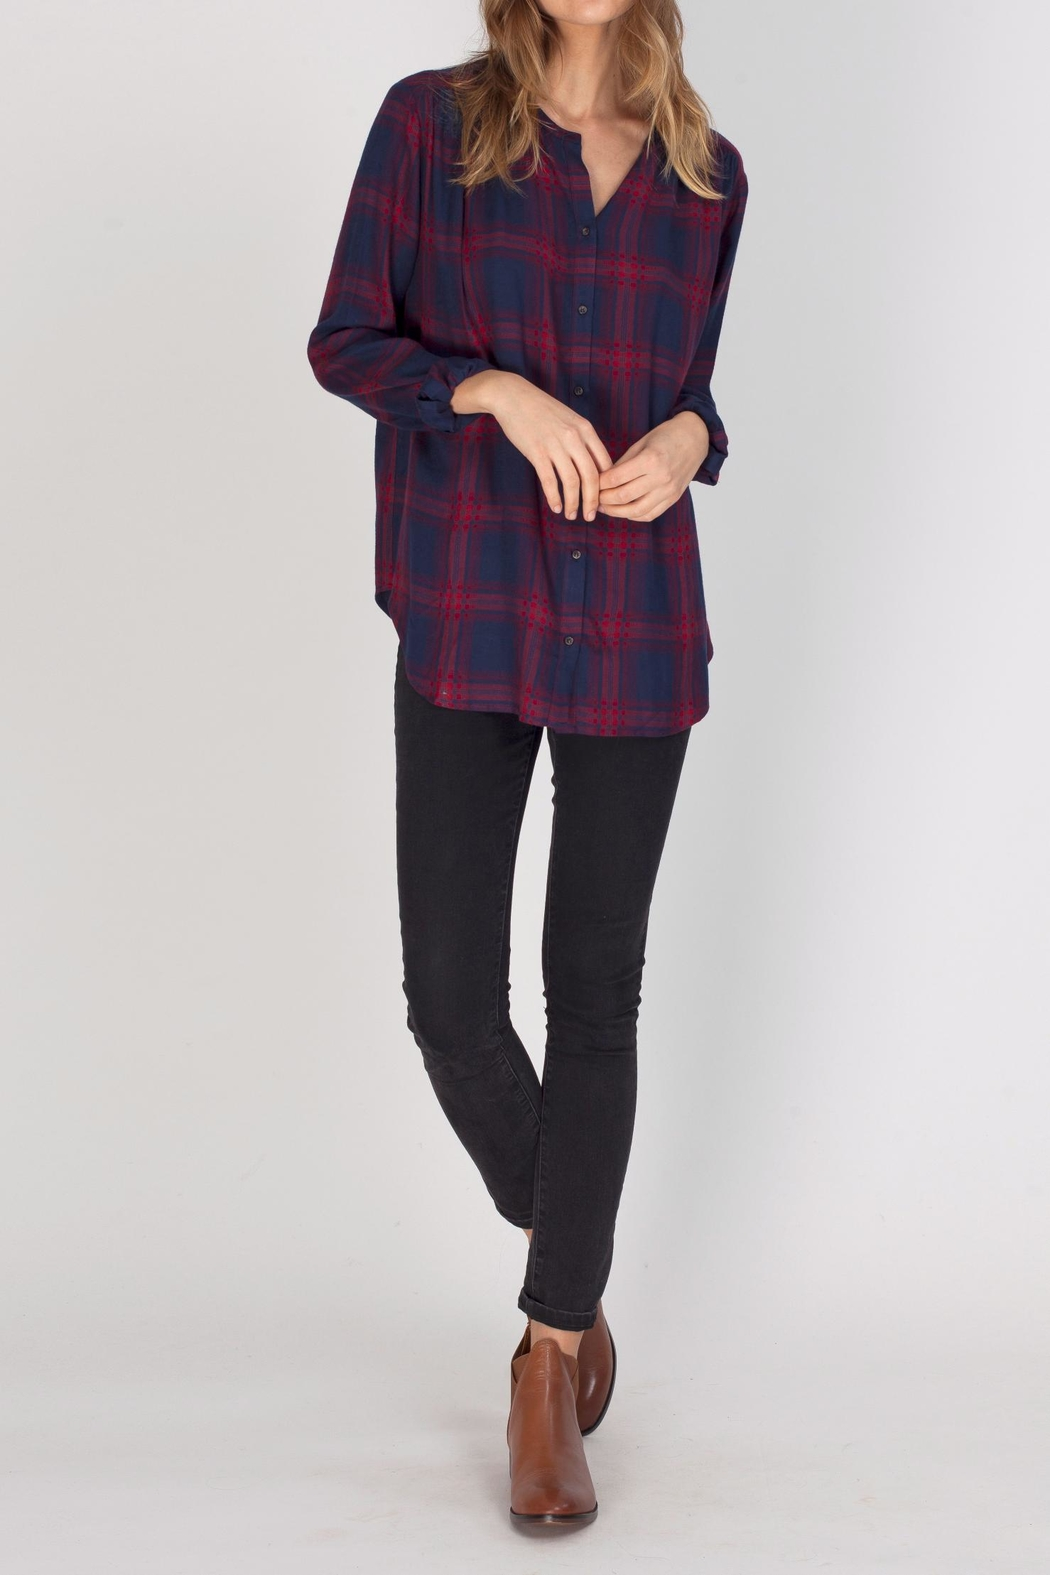 Gentle Fawn Alpha Plaid Top - Main Image